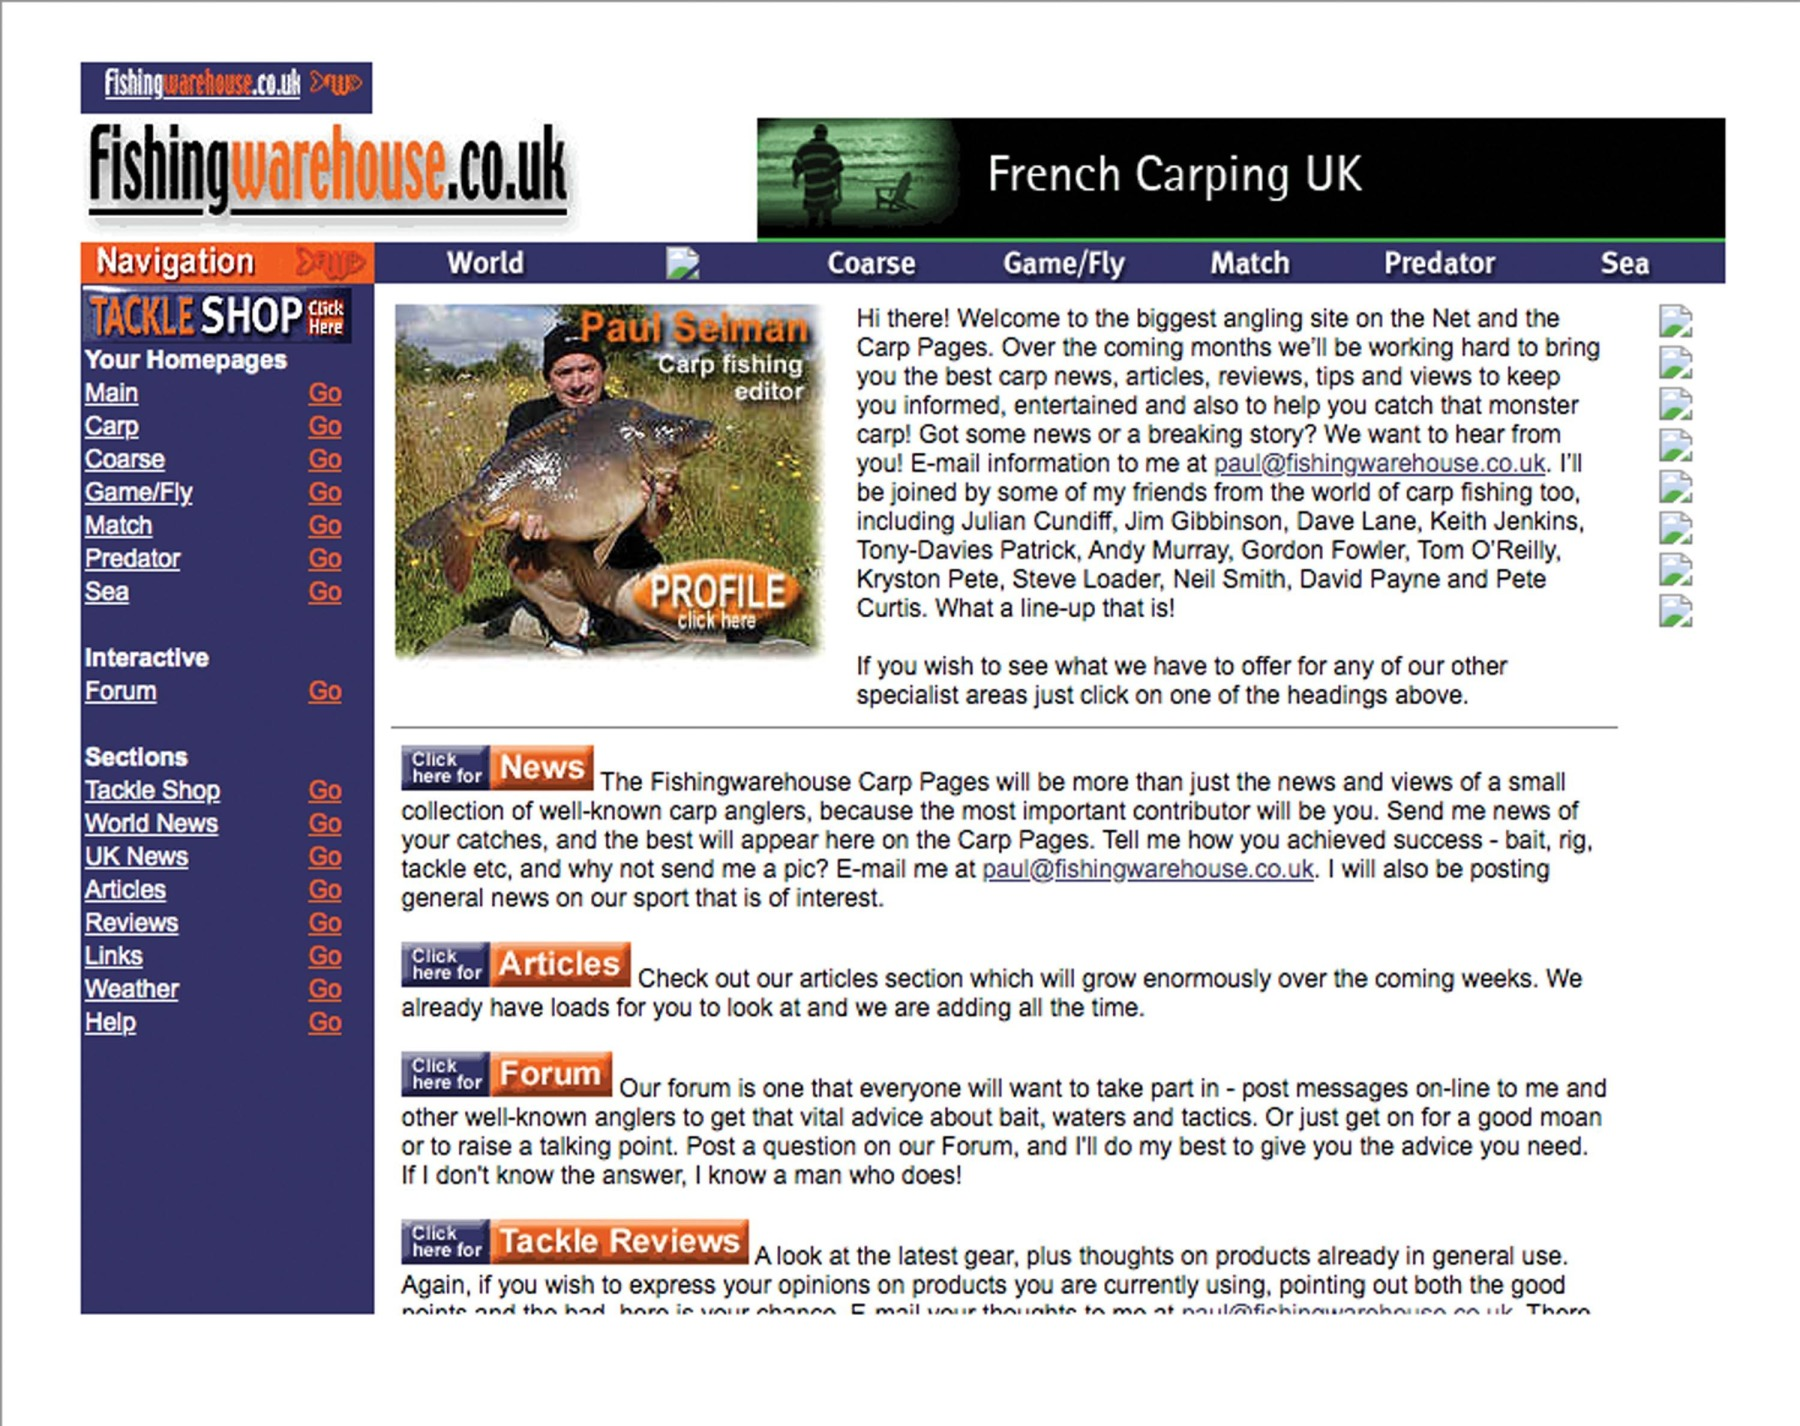 Paul's role was overseeing the whole site, along with being the carp fishing editor